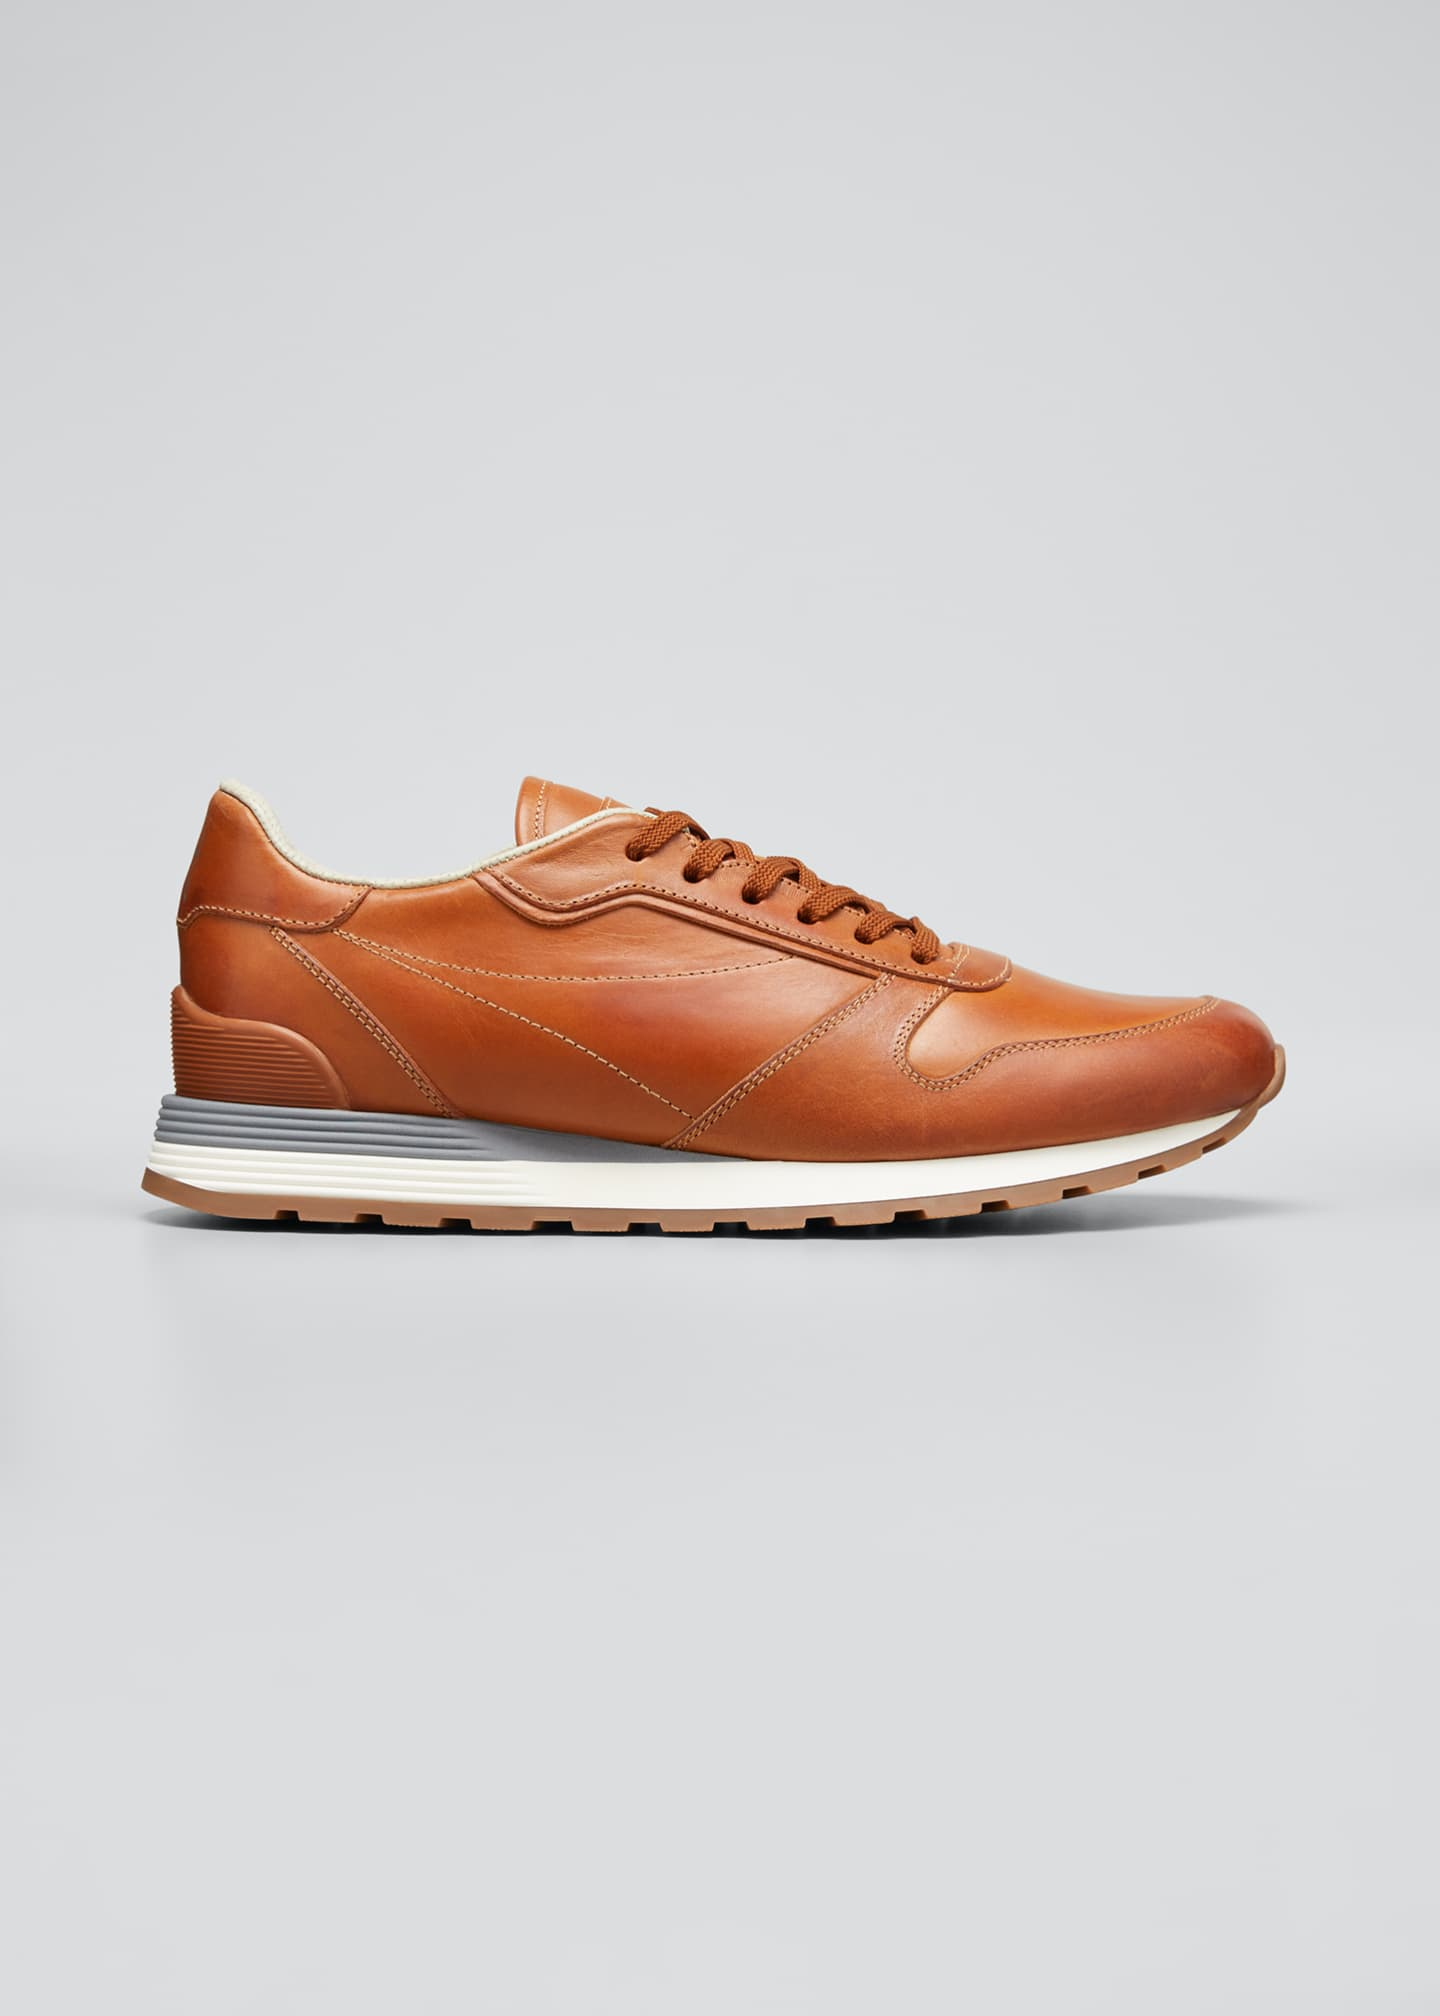 Image 1 of 3: Men's Leather Trainer Sneakers